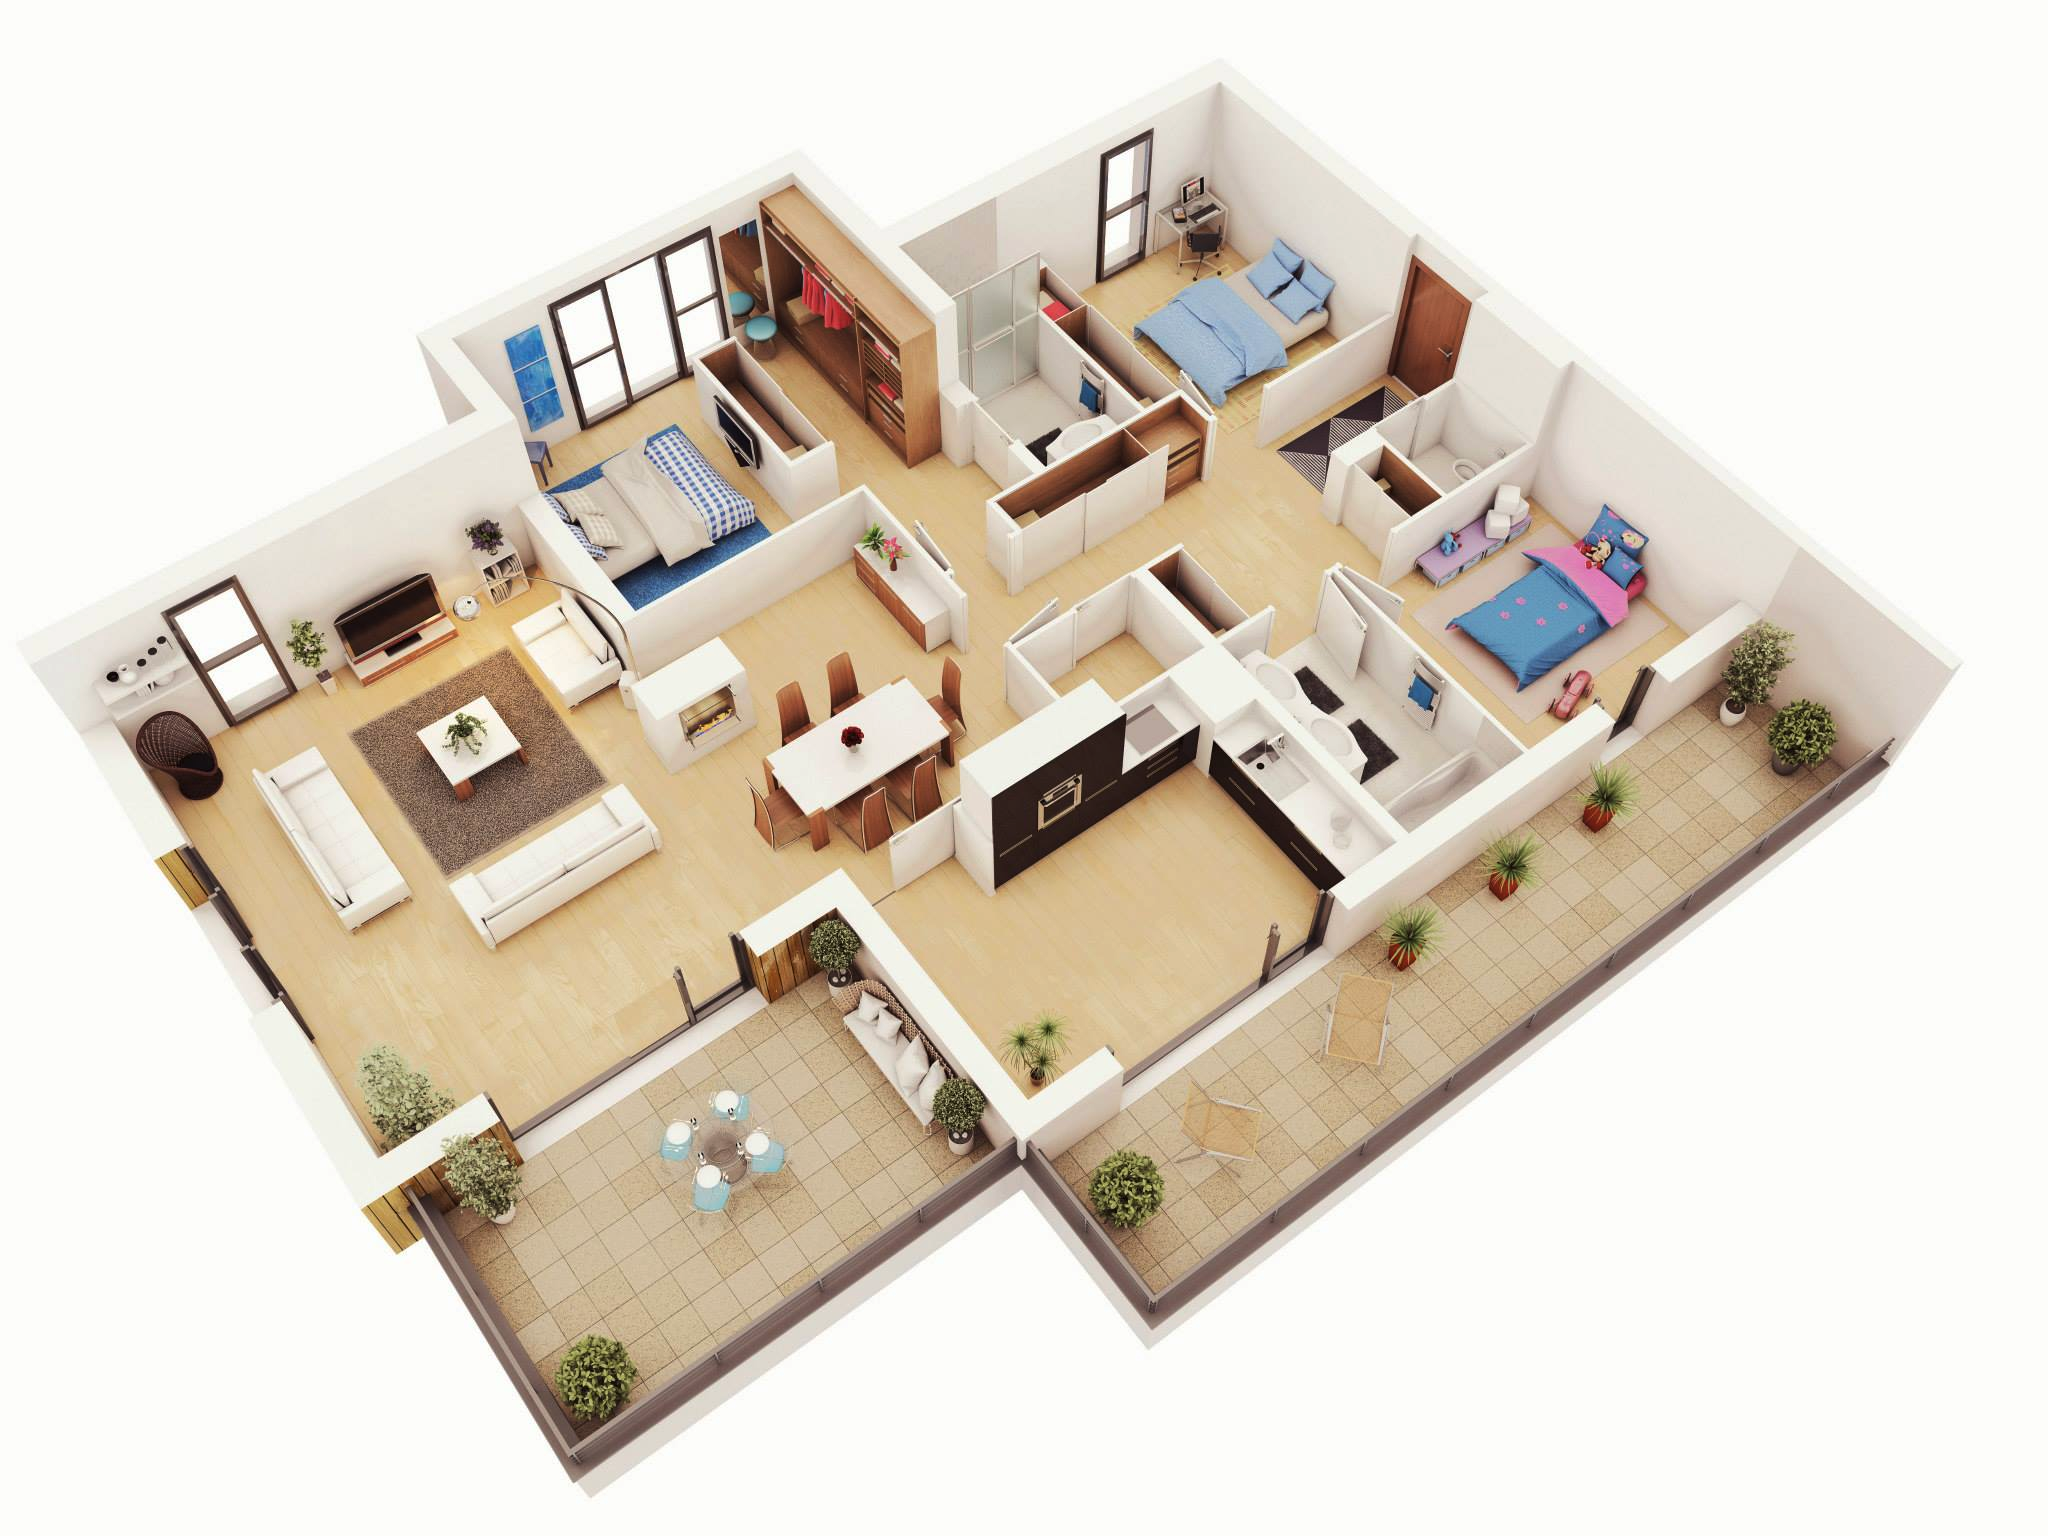 3 Bedroom House Inspiration 25 More 3 Bedroom 3D Floor Plans  Architecture & Design Inspiration Design